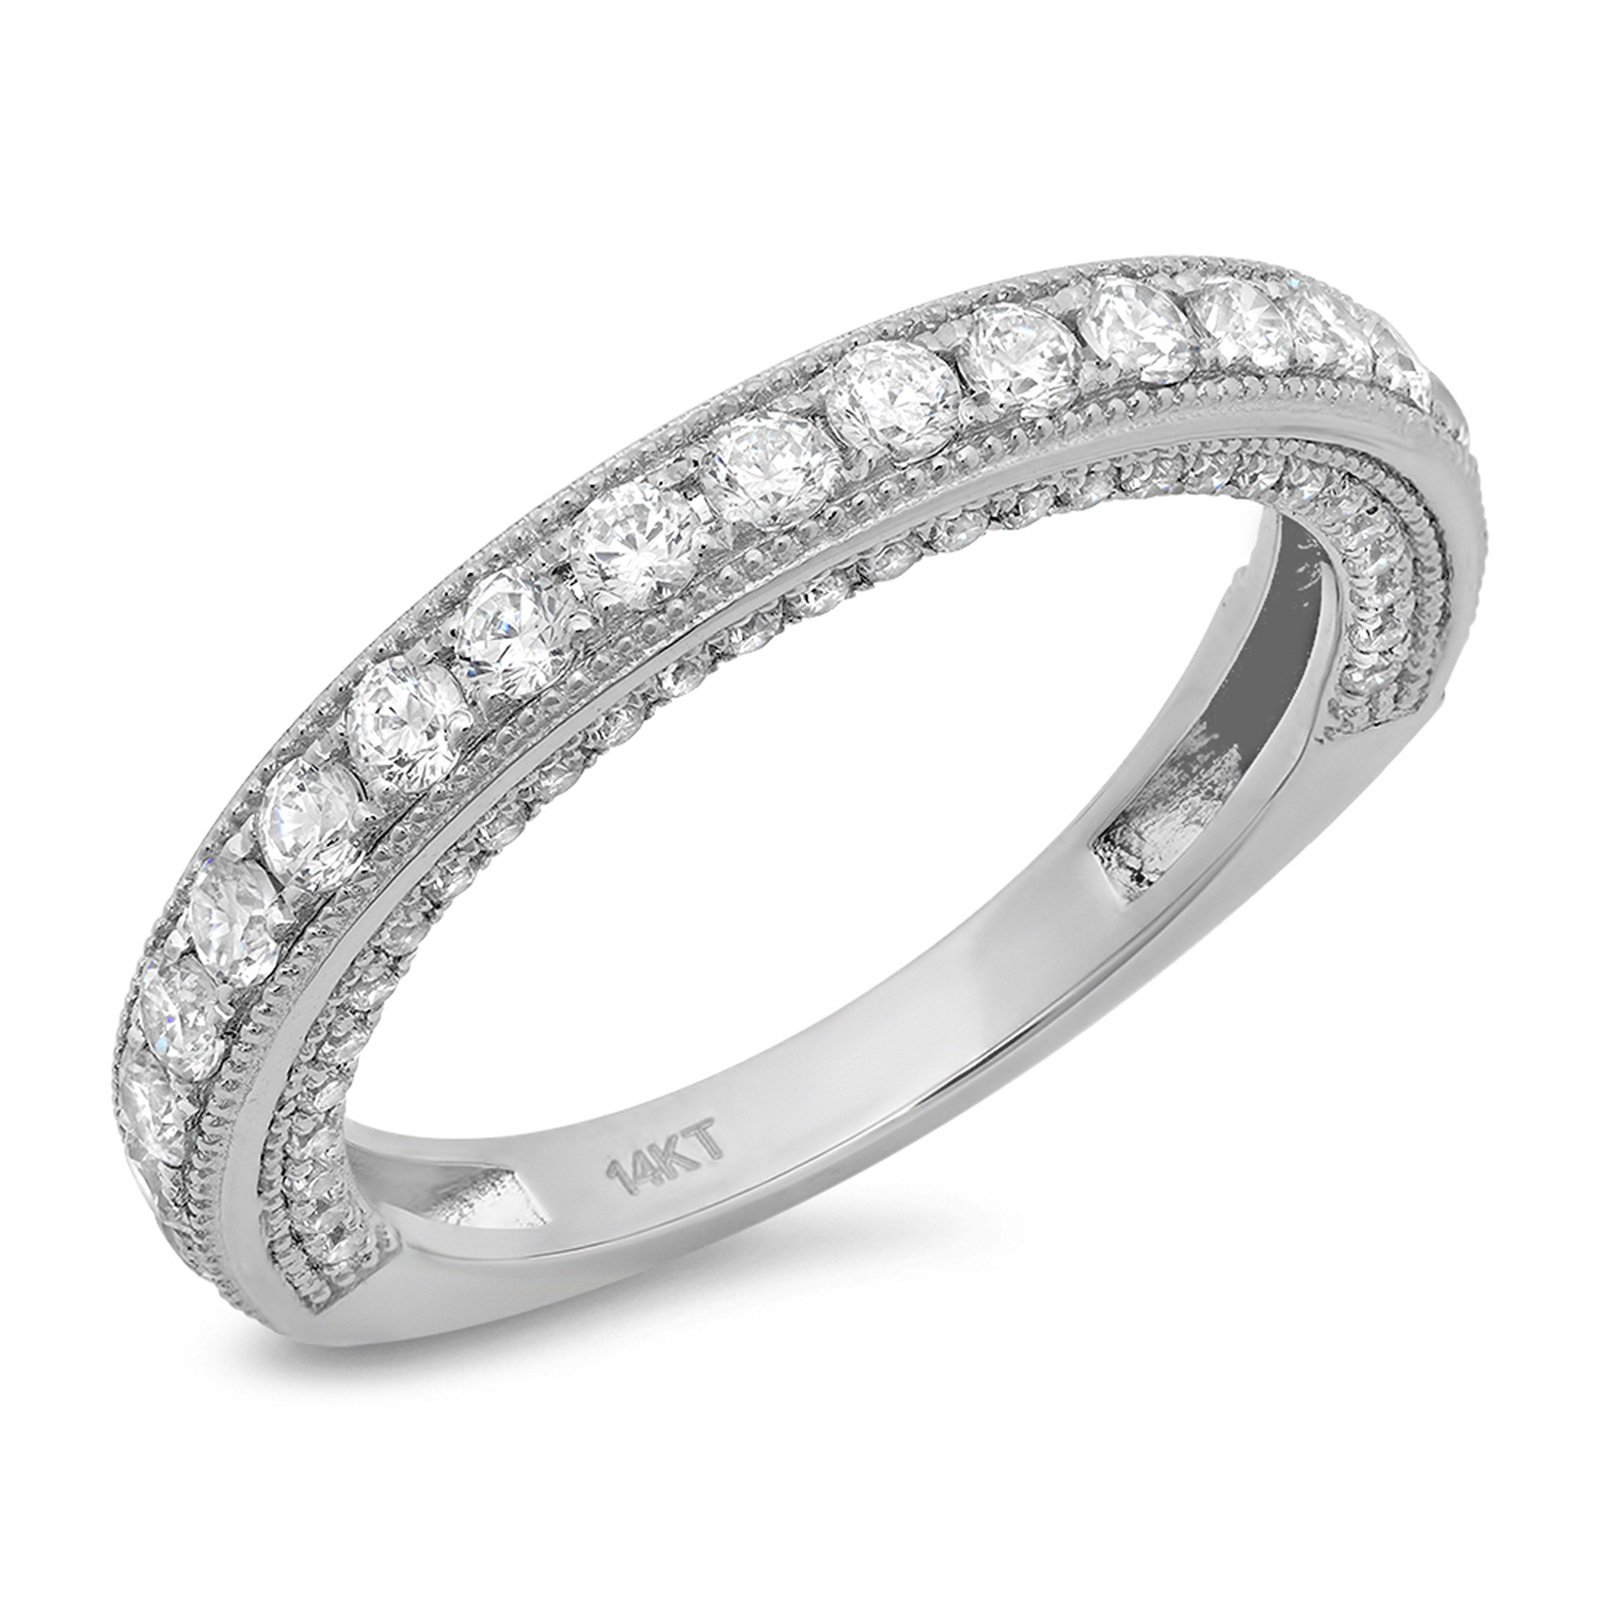 Clara Pucci 1.2 Ct Round Cut Pave Set Wedding Bridal Eternity Engagement Anniversary Band Ring 14K White Gold, Size 5 by Clara Pucci